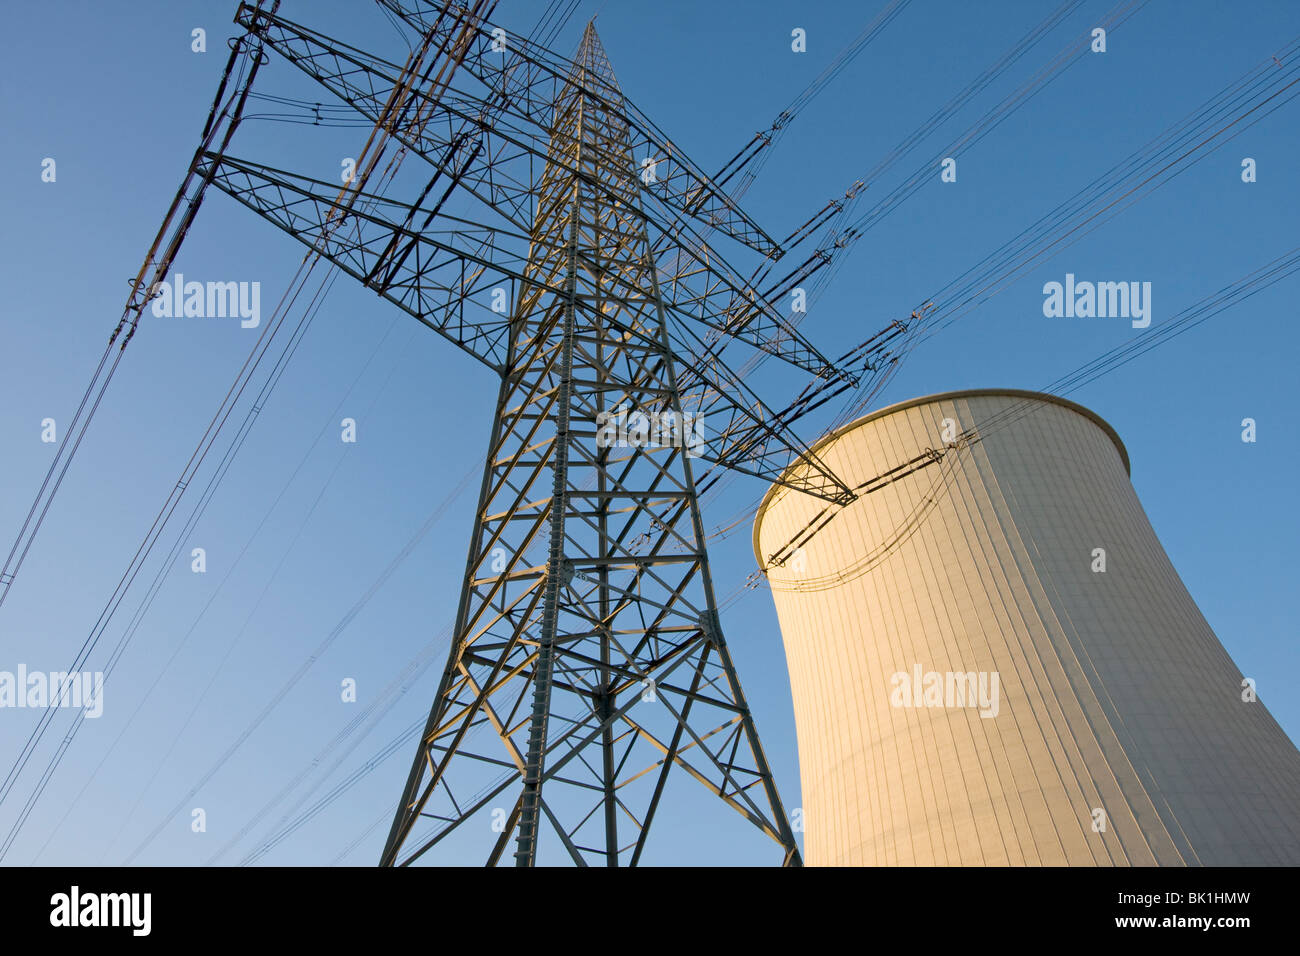 Power pole with cooling tower - Stock Image